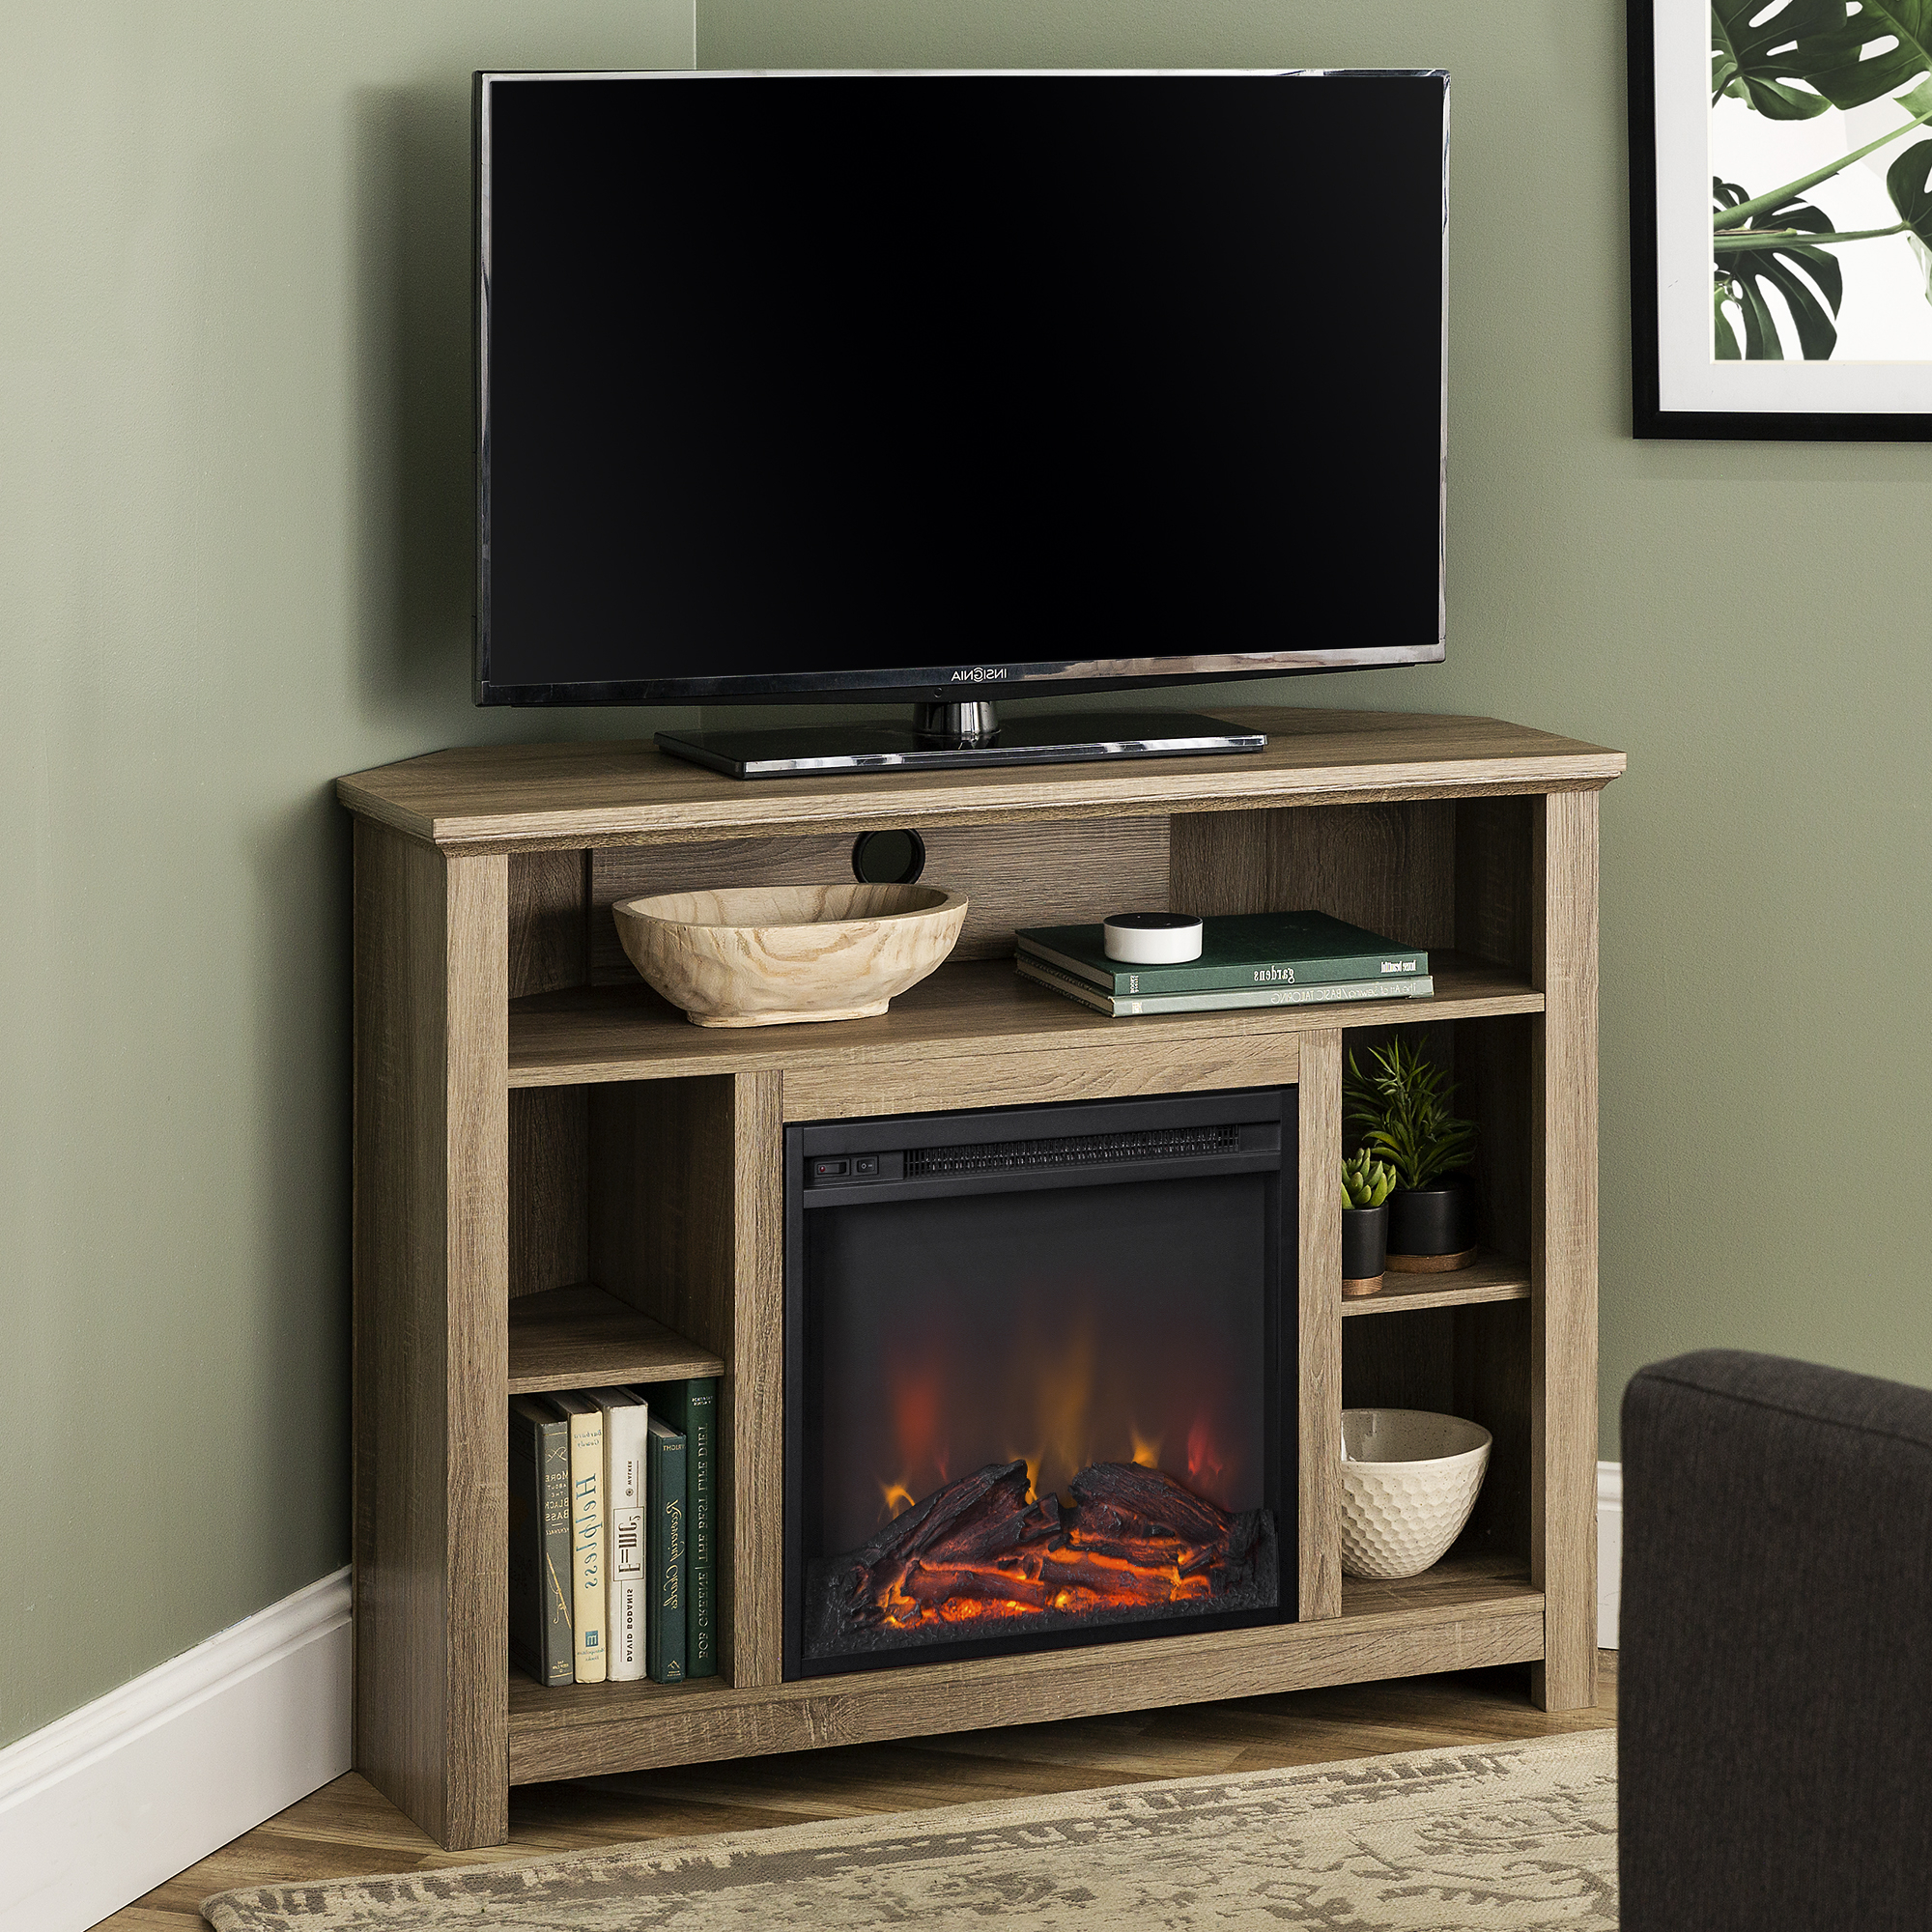 """Trendy Manor Park Tall Corner Fireplace Tv Stand For Tvs Up To 50 Inside Allegra Tv Stands For Tvs Up To 50"""" (View 4 of 25)"""